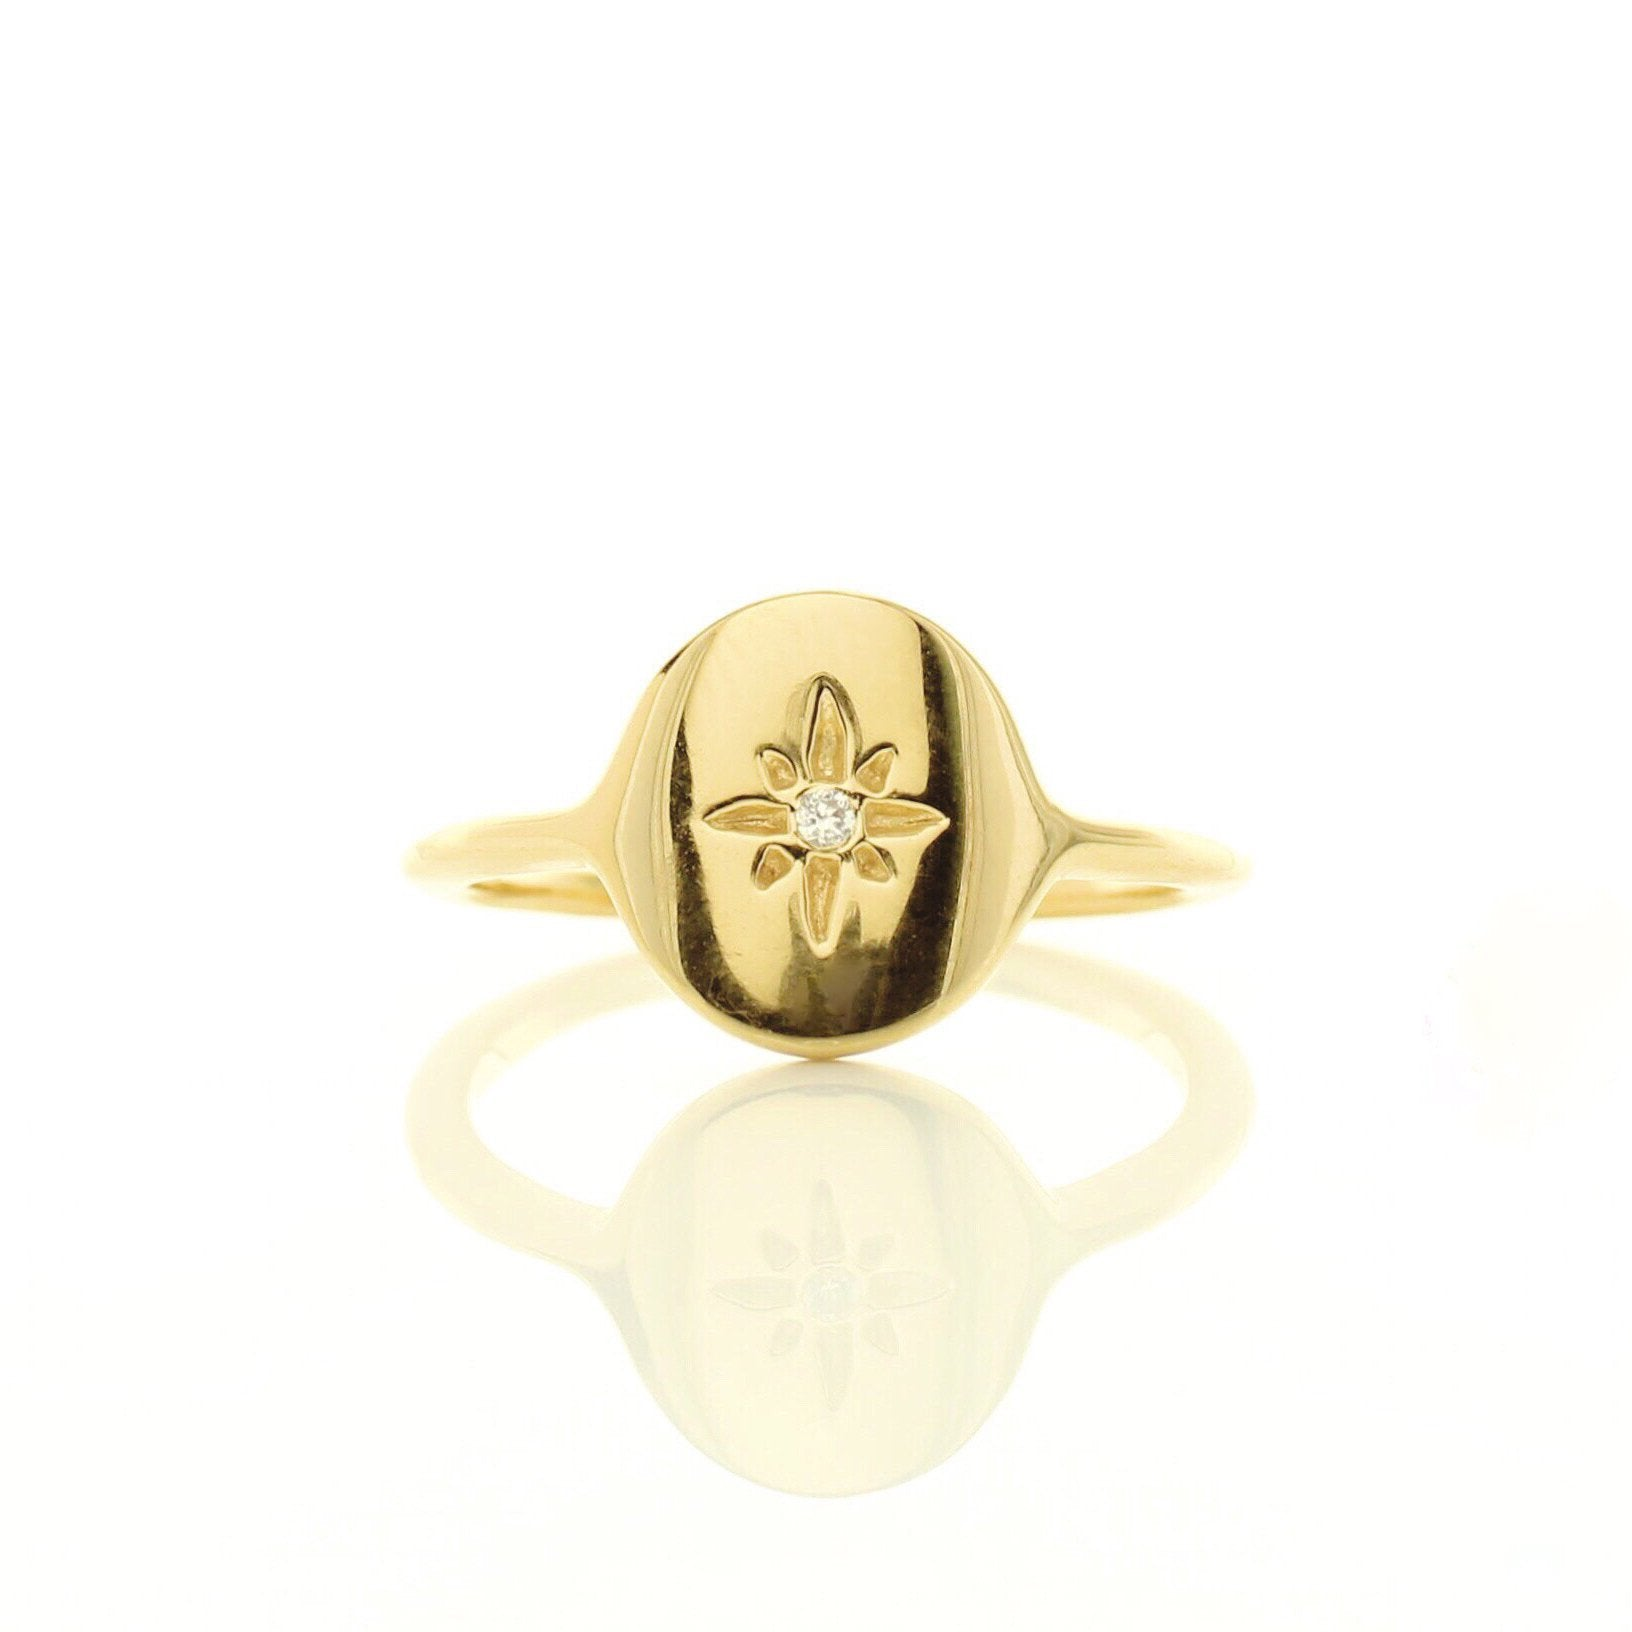 MINI IMAGINE SIGNET RING - CUBIC ZIRCONIA & GOLD - SO PRETTY CARA COTTER